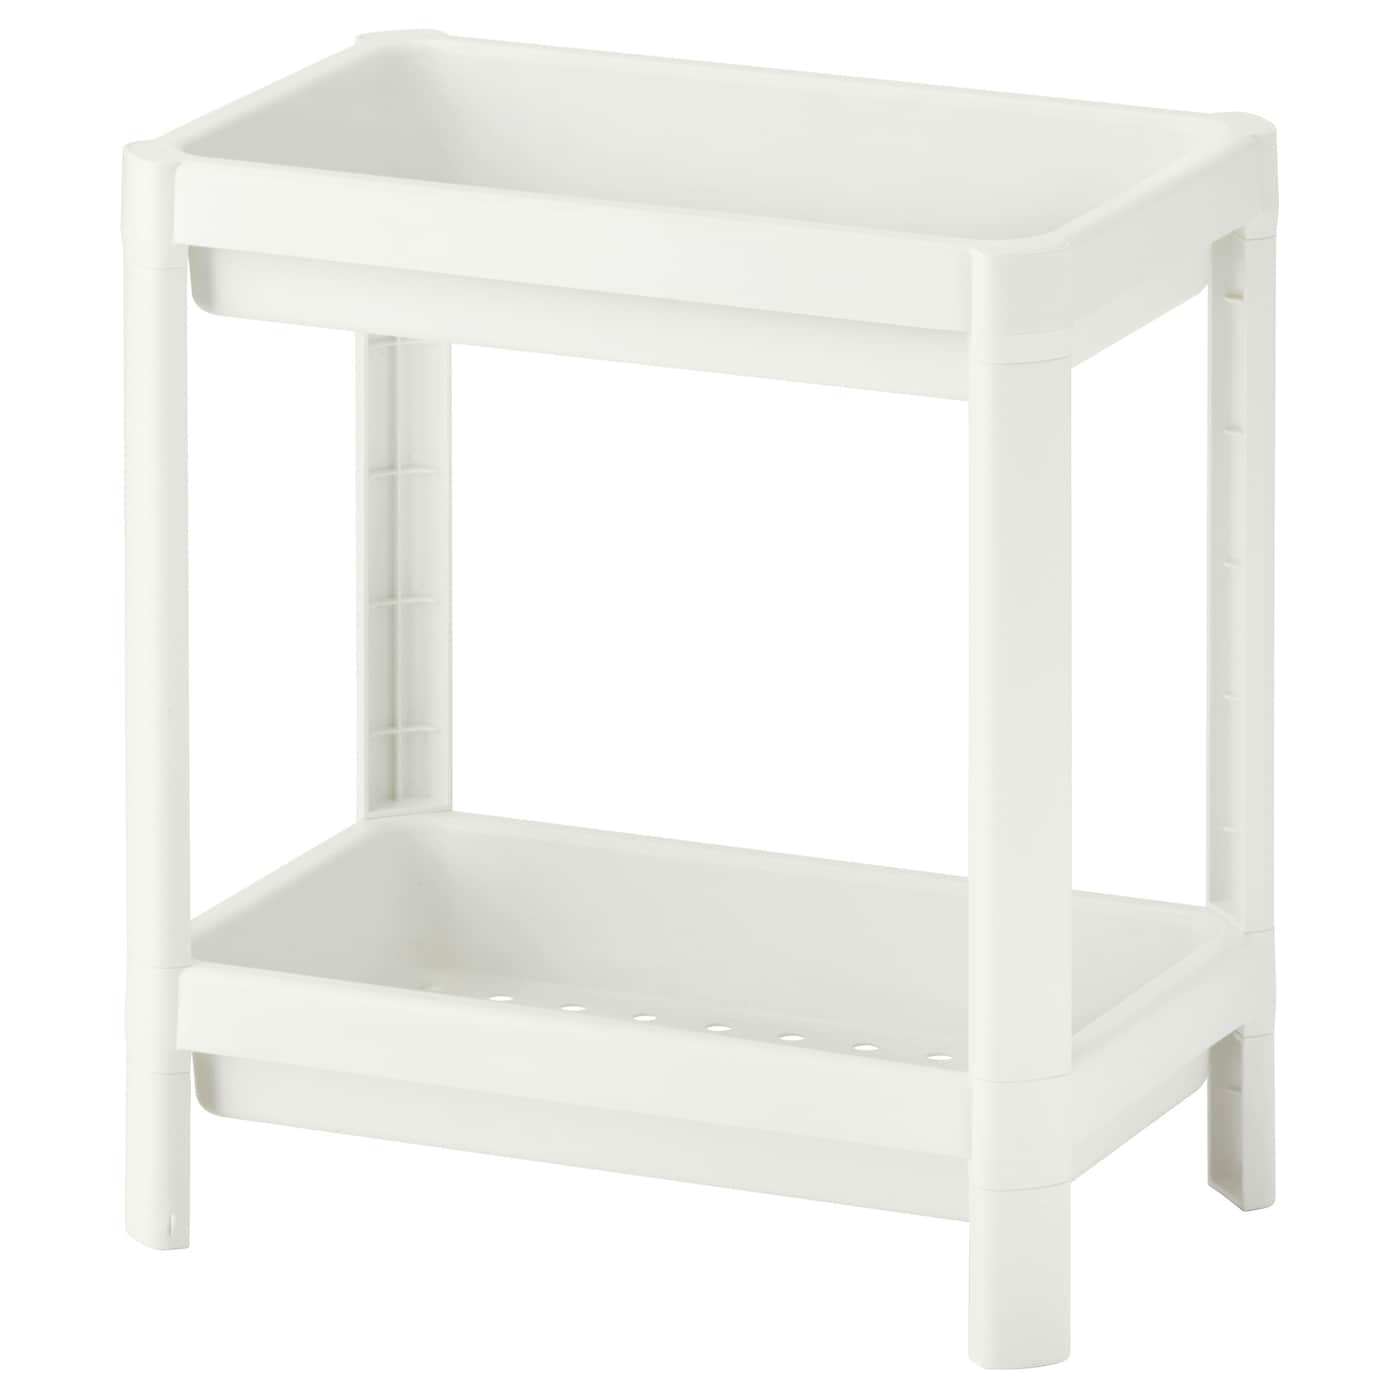 Vesken Shelf Unit White 36x40 Cm Ikea